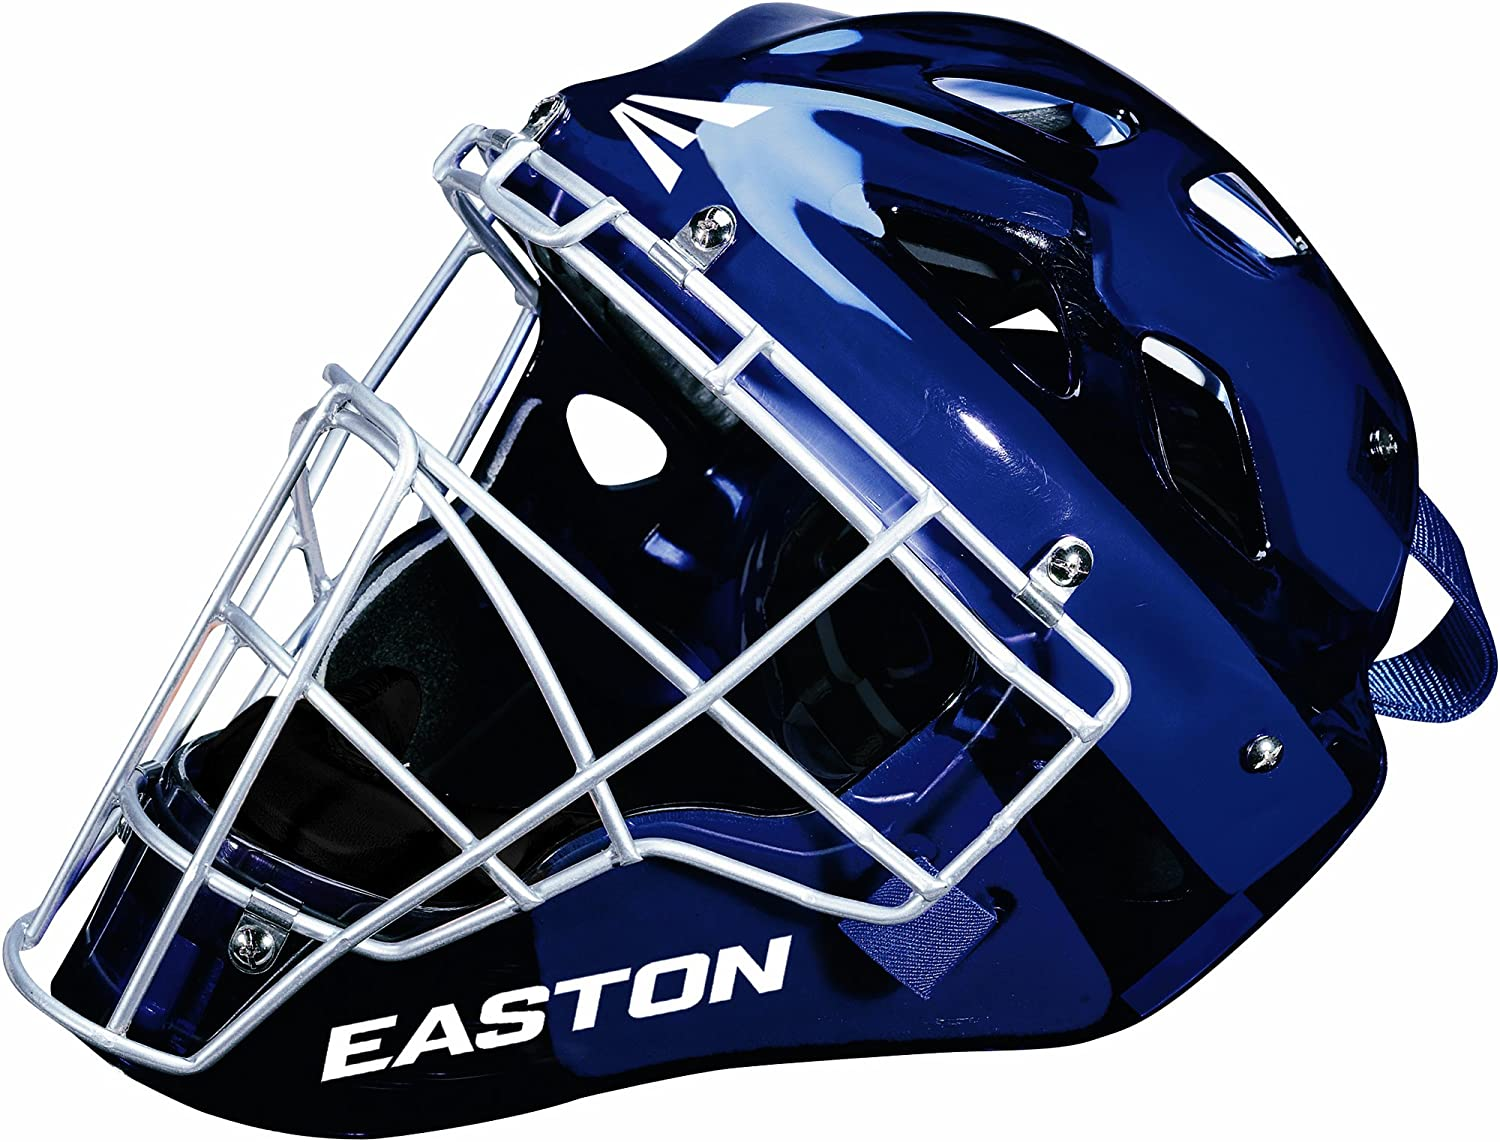 Easton Stealth Speed Elite Catchers Helmet (Large, Navy) Easton Sports Inc. A165300NYL